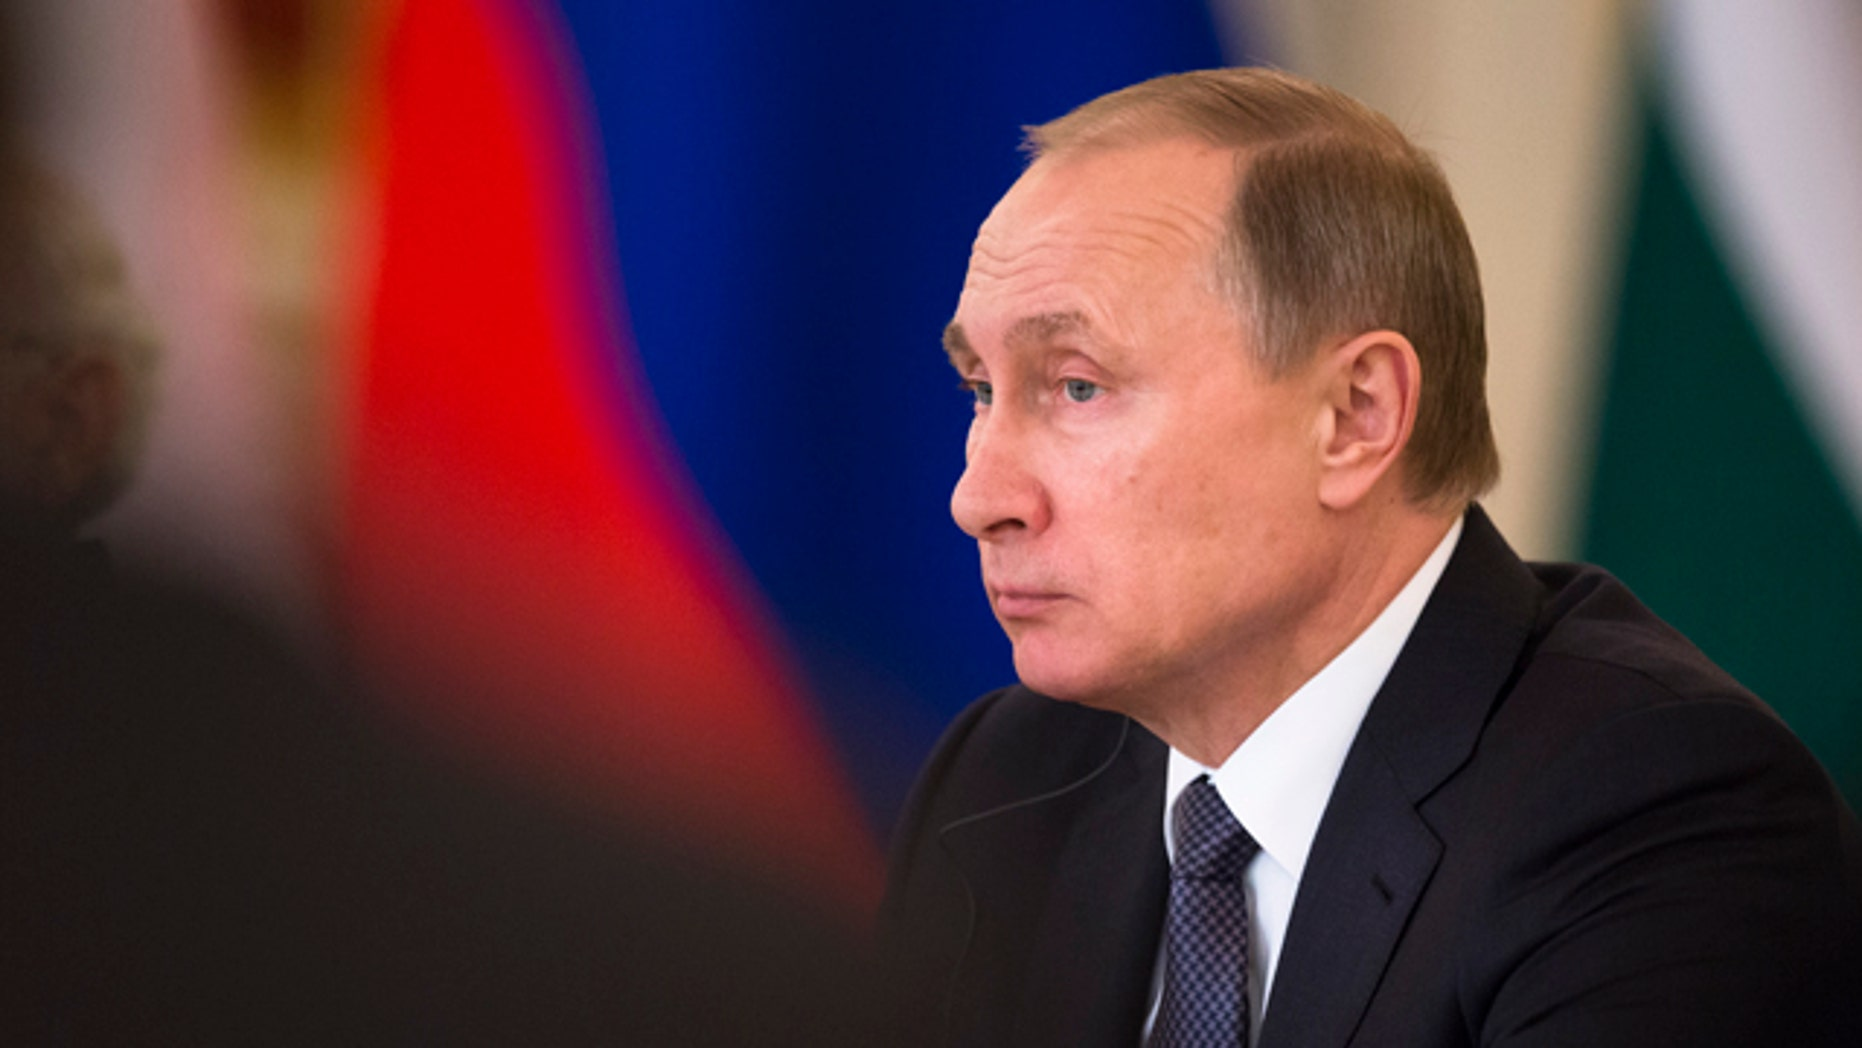 Russian President Vladimir Putin attends a meeting with Russian and Indian officials and businessmen during his meeting with Indian Prime Minister Narendra Modi  in the Kremlin in Moscow, Thursday, Dec. 24, 2015. (AP Photo/Pavel Golovkin)